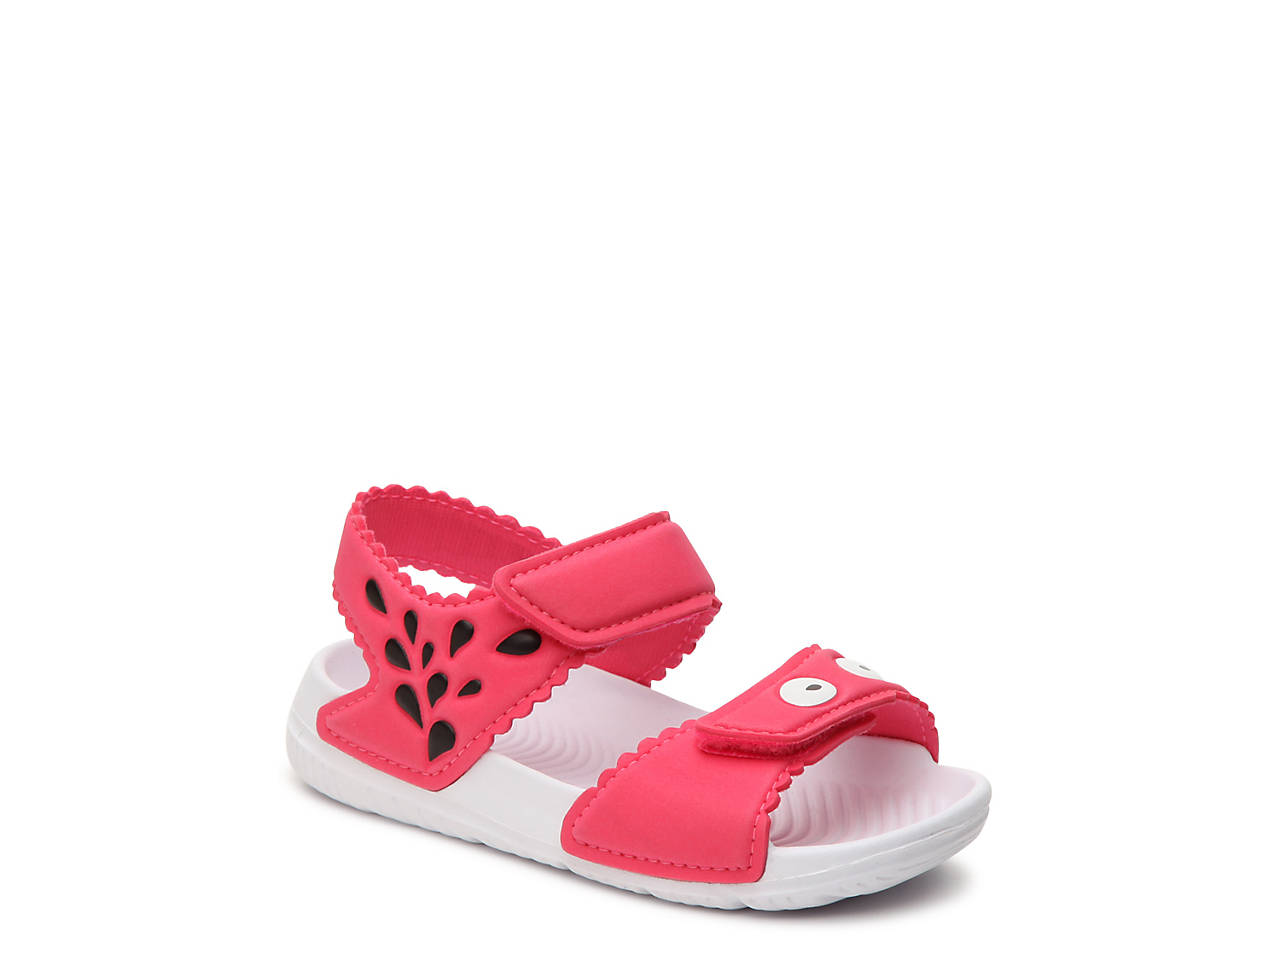 c1d5b8fa3f5233 adidas Alta Swim Infant   Toddler Sandal Kids Shoes